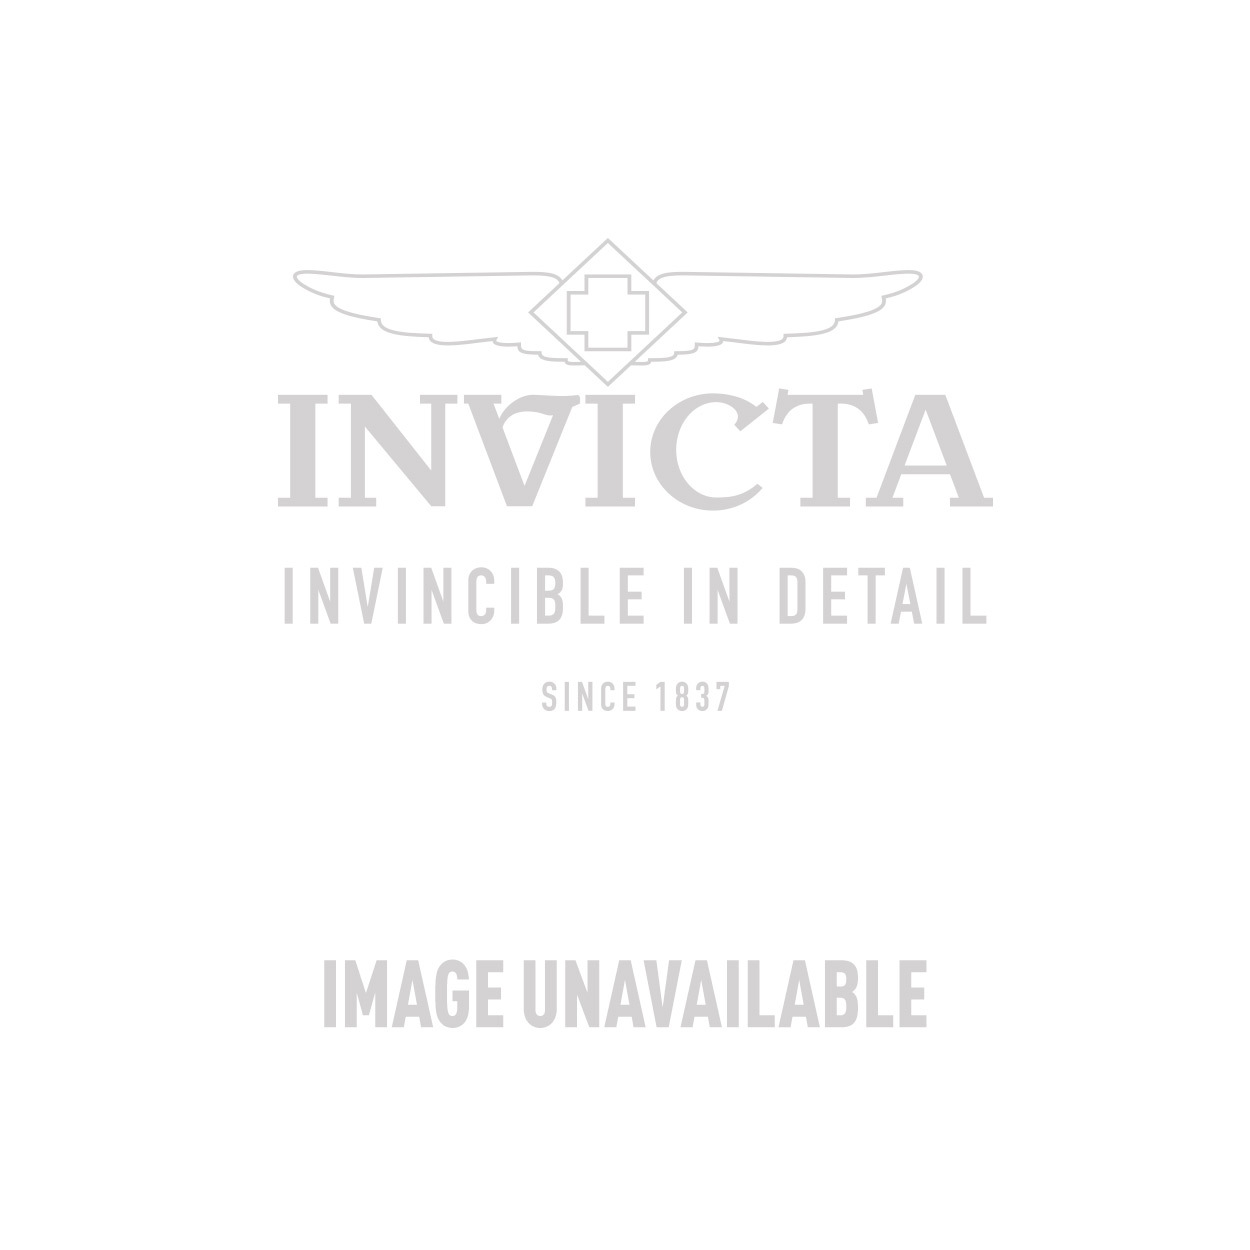 Invicta I-Force Quartz Watch - Black case with Black, Red tone Stainless Steel, Rifle band - Model 18694